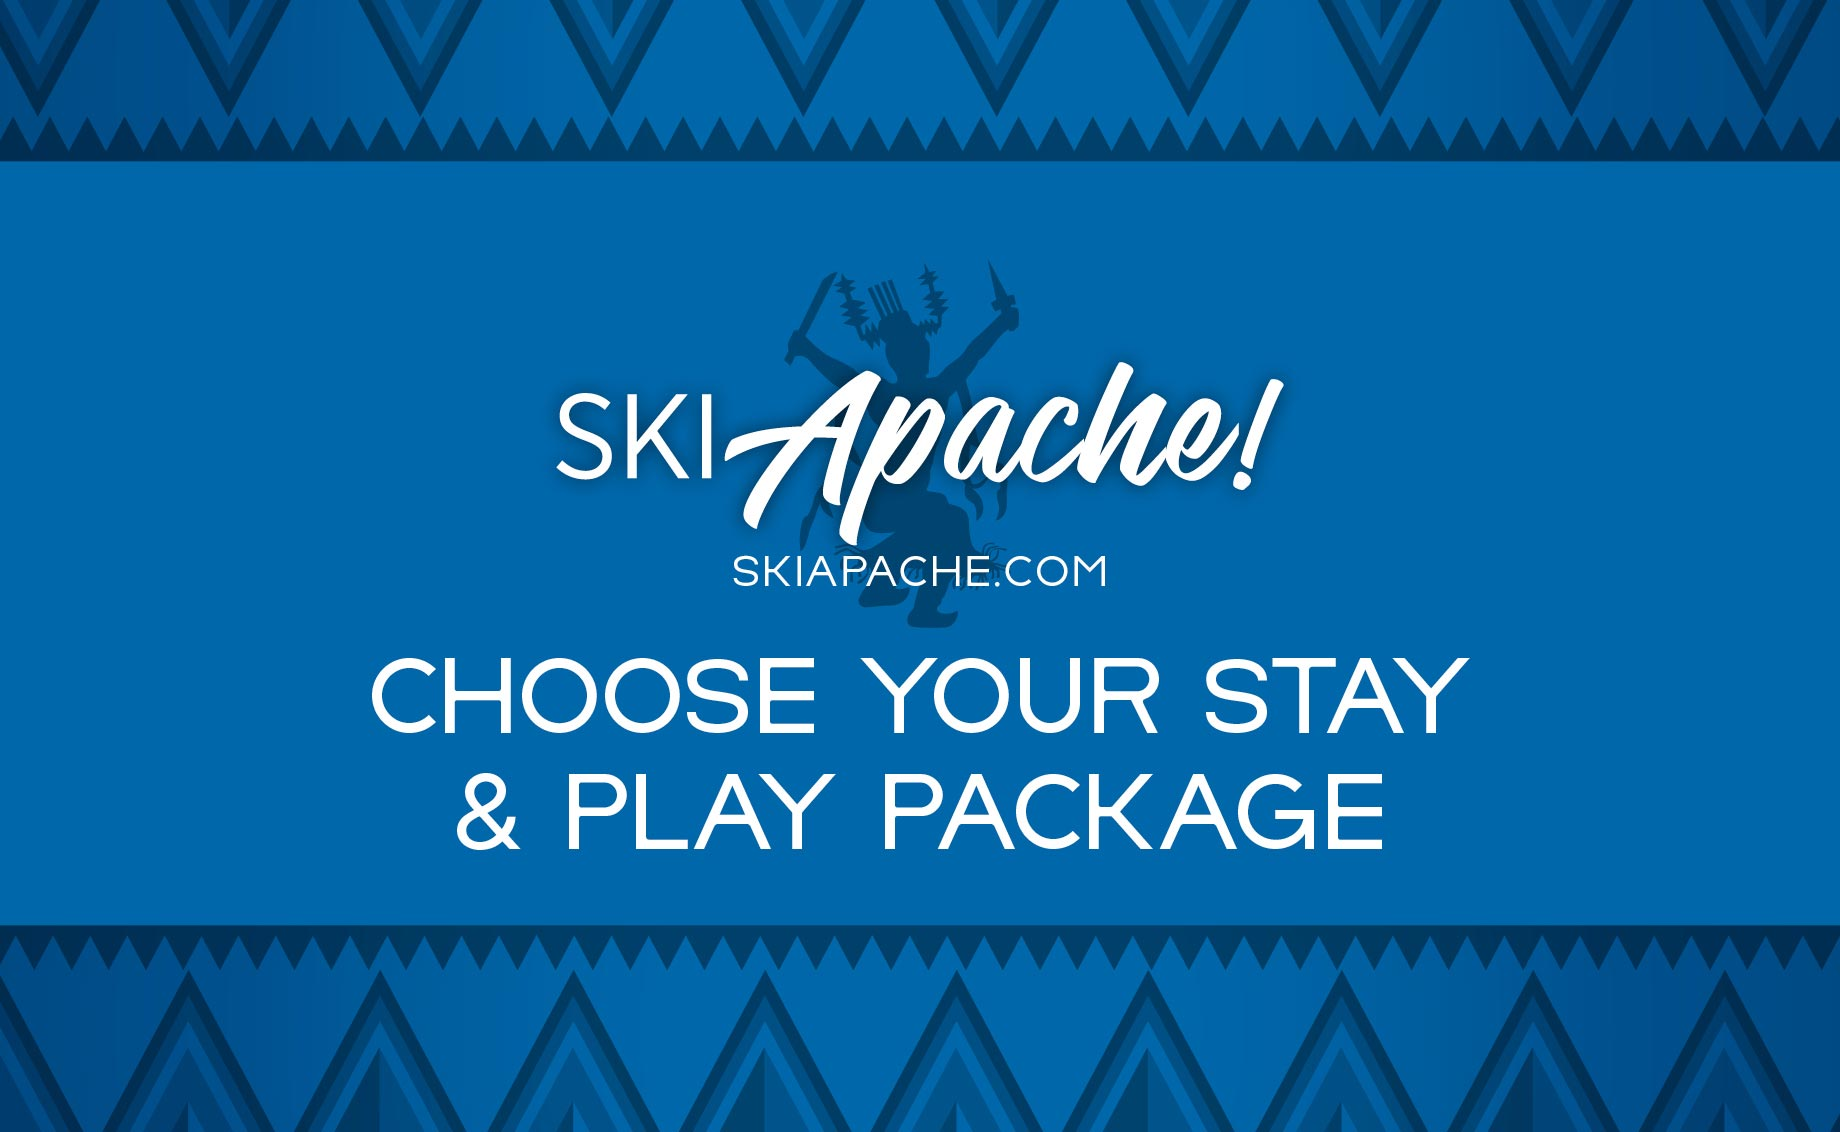 Ski Apache Stay & Play Packages 2019/2020